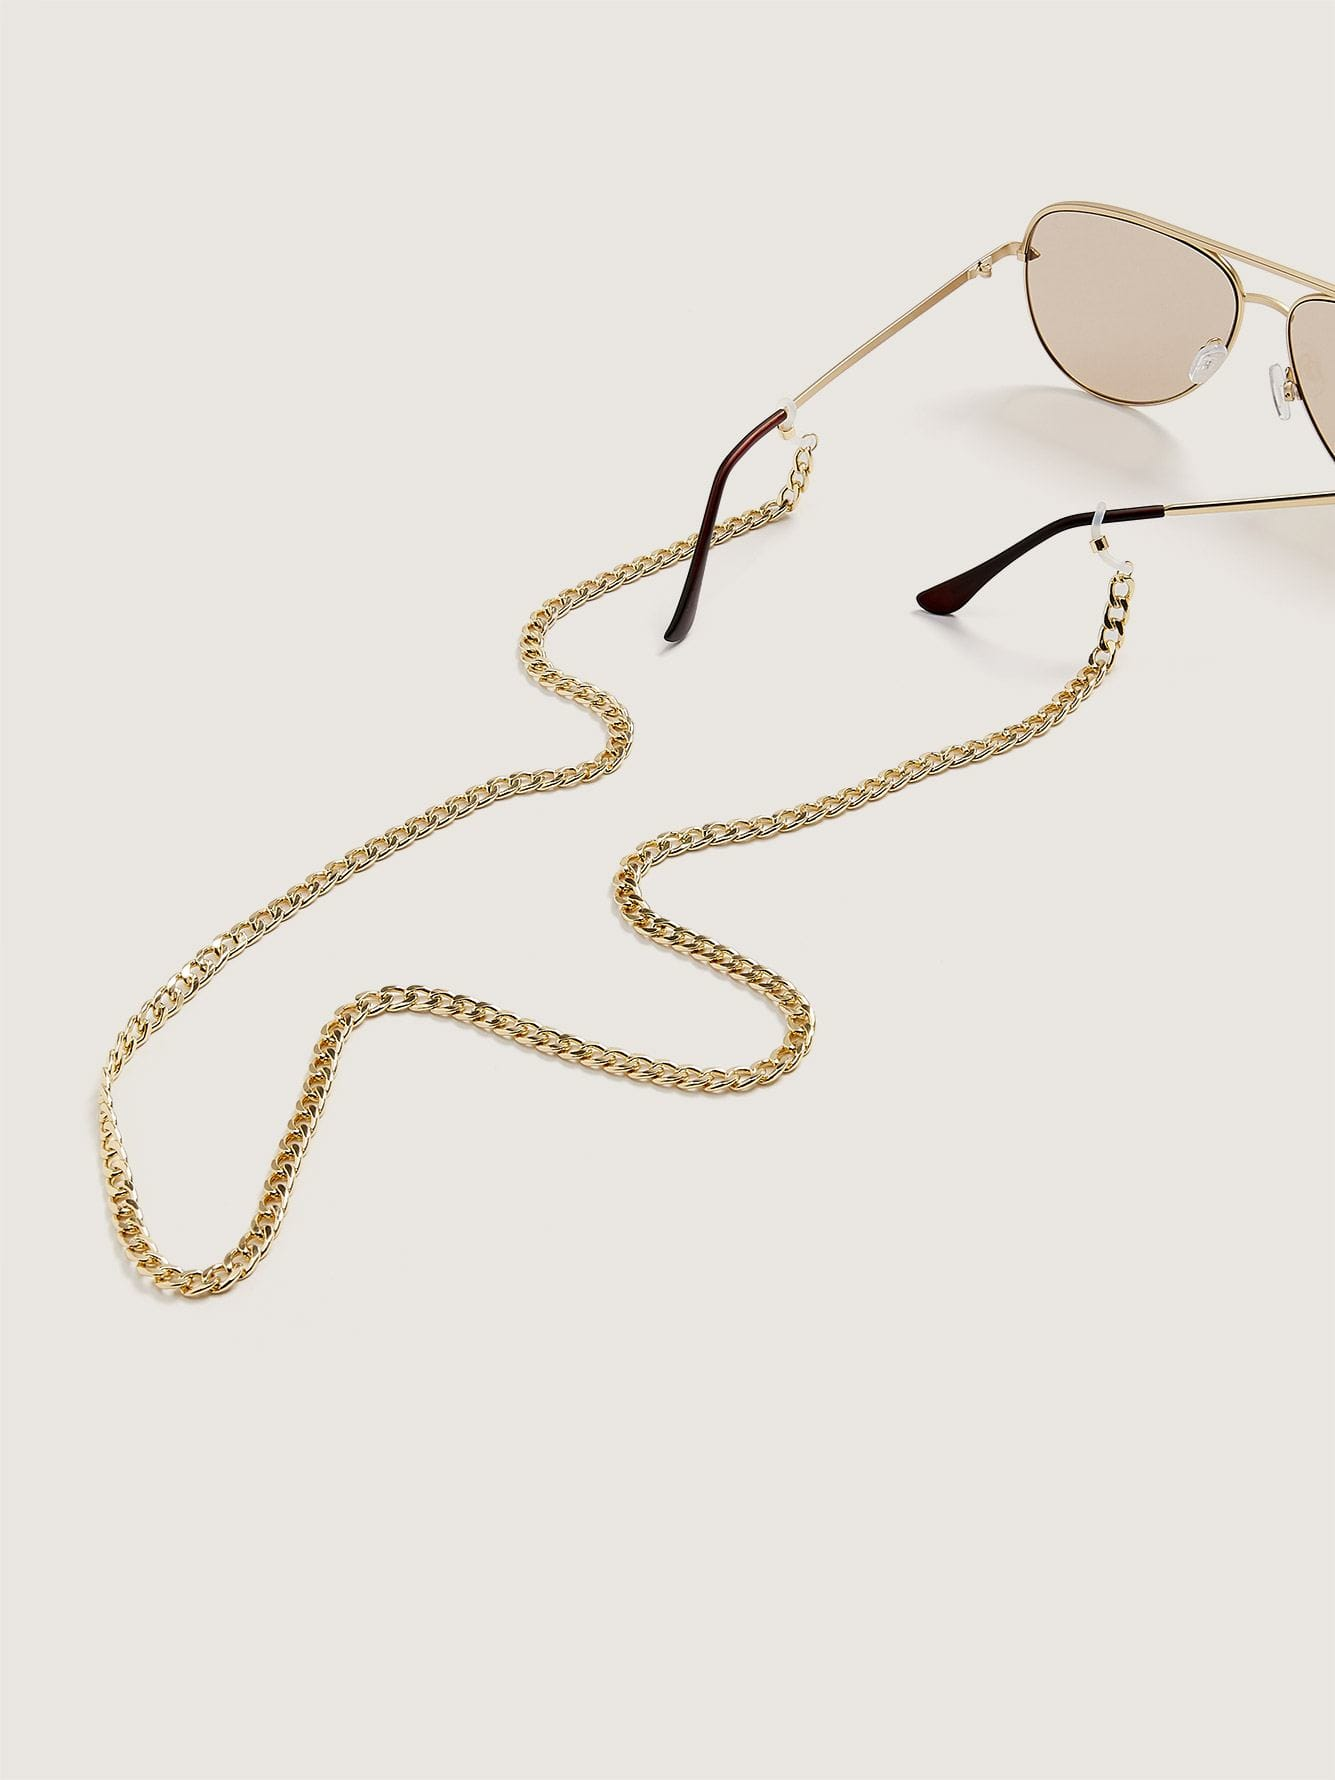 Metallic Sunglasses Chain